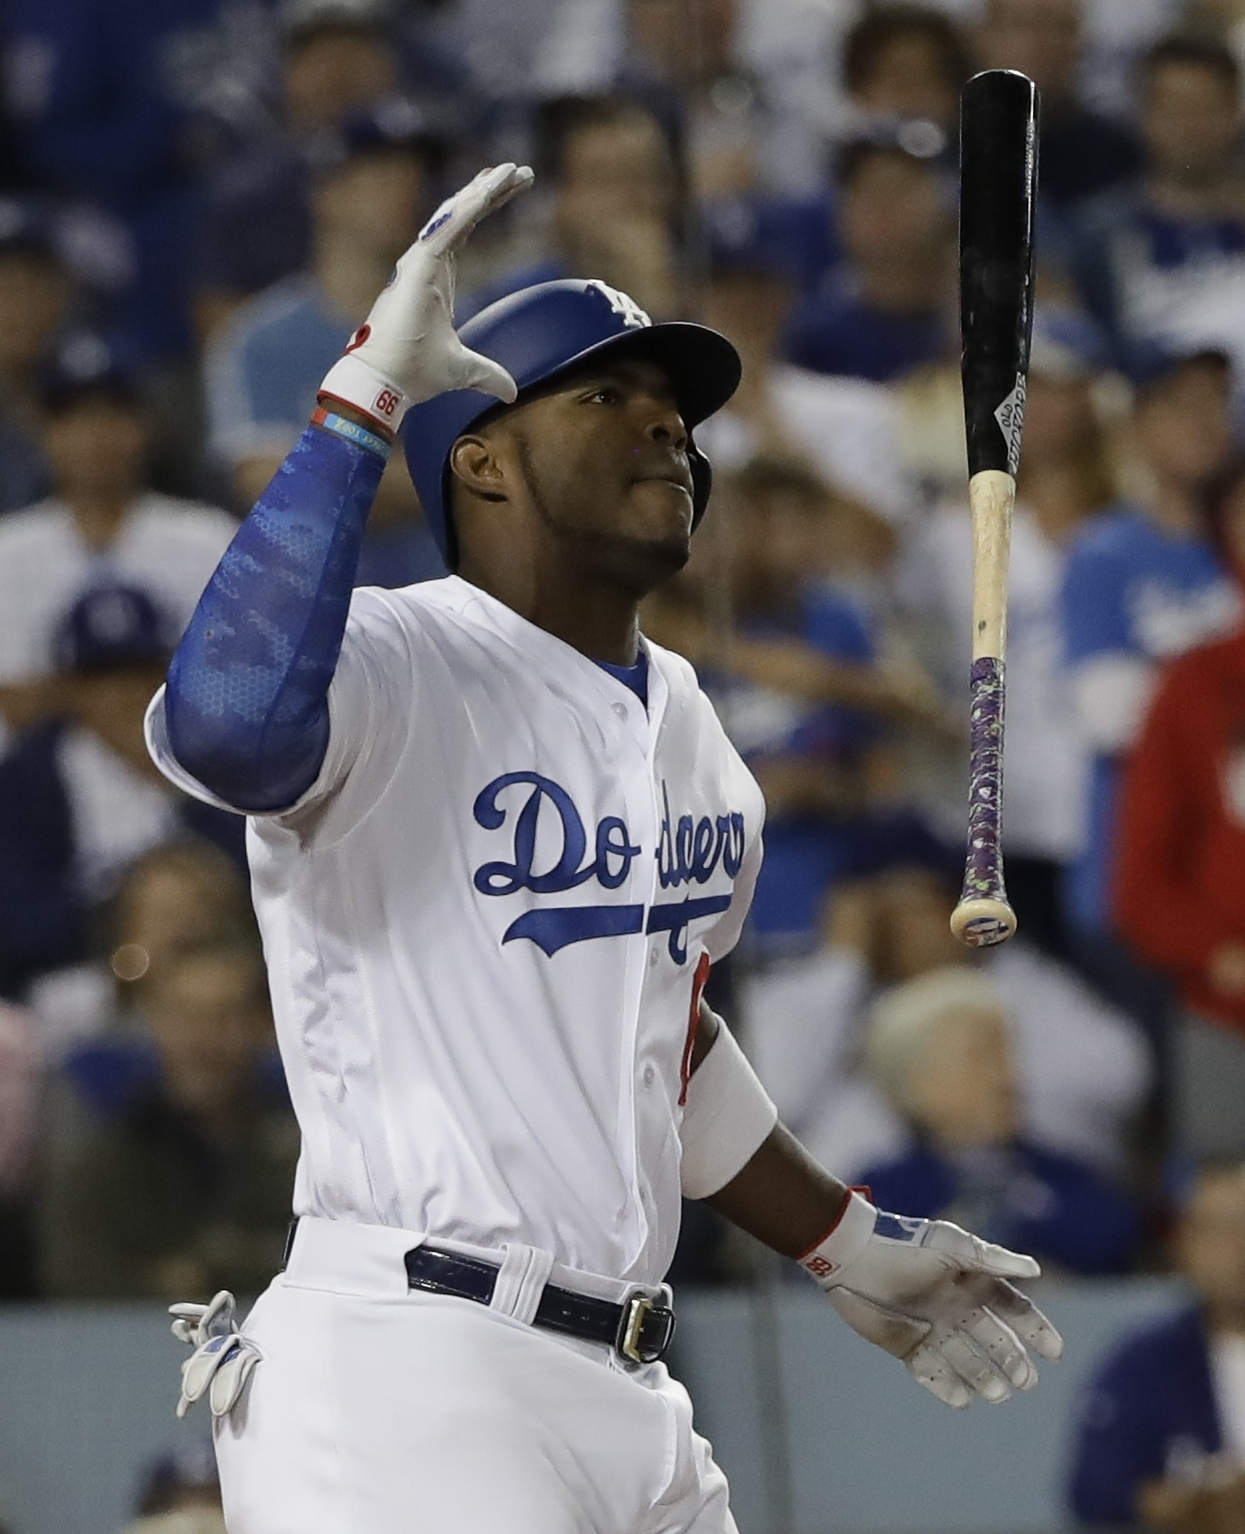 <div class='meta'><div class='origin-logo' data-origin='AP'></div><span class='caption-text' data-credit='(AP Photo/David J. Phillip)'>Los Angeles Dodgers' Yasiel Puig reacts to a strike during the fifth inning of Game 7 of baseball's World Series against the Houston Astros Wednesday, Nov. 1, 2017, in Los Angeles.</span></div>